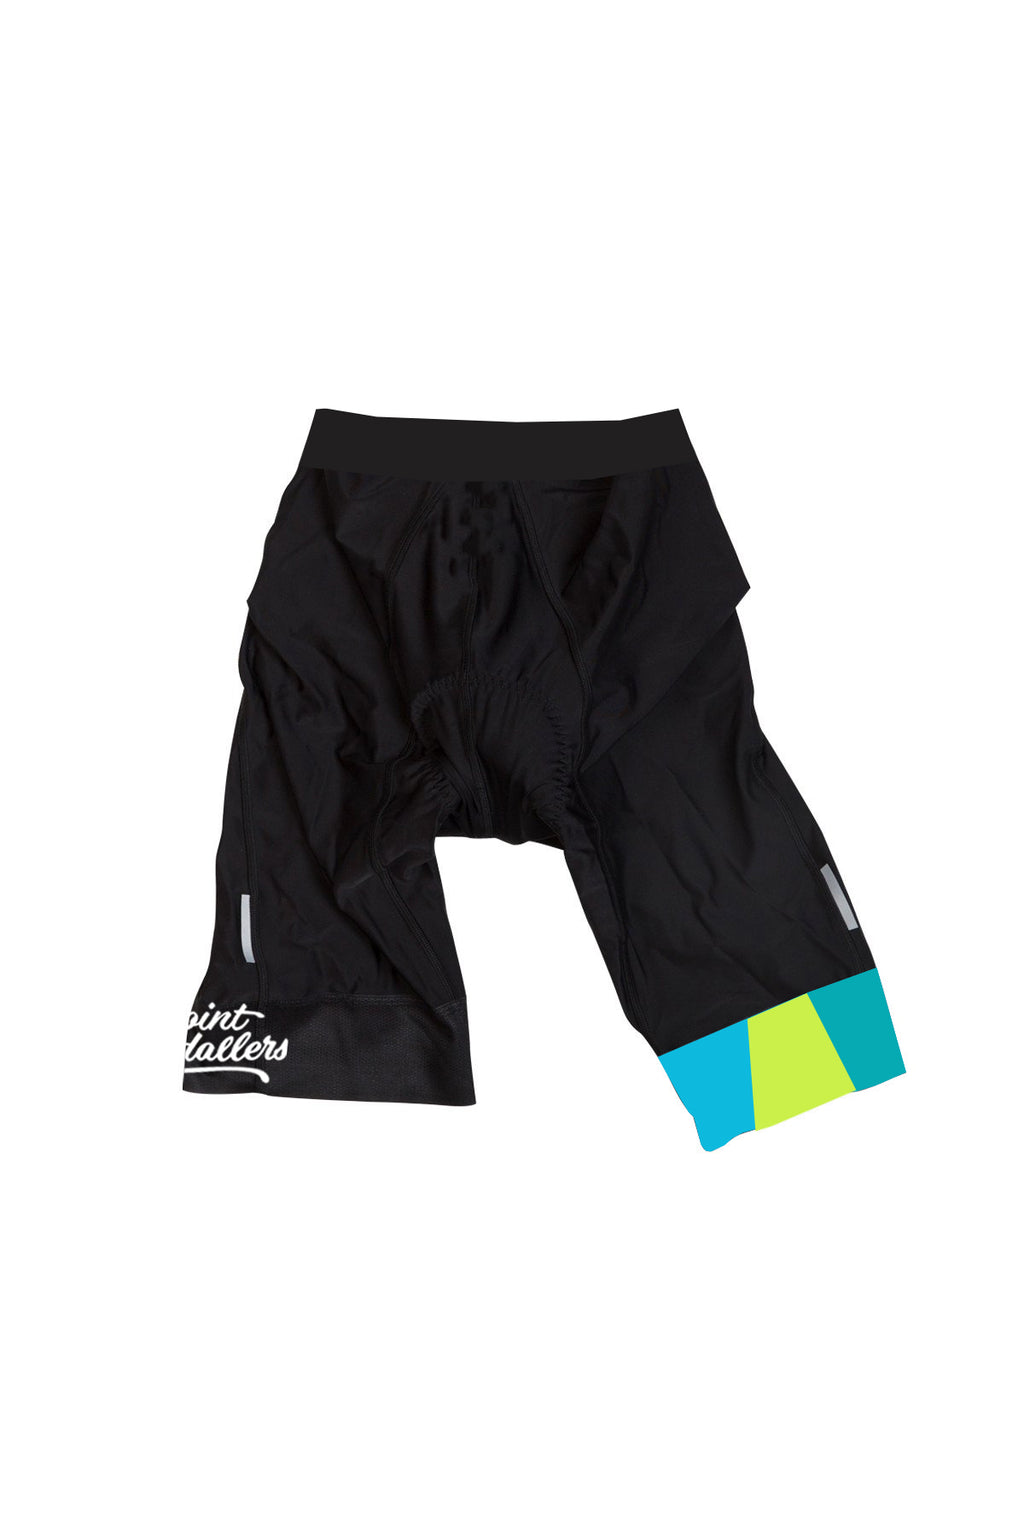 Point Pedallers - Womens Cycling Shorts